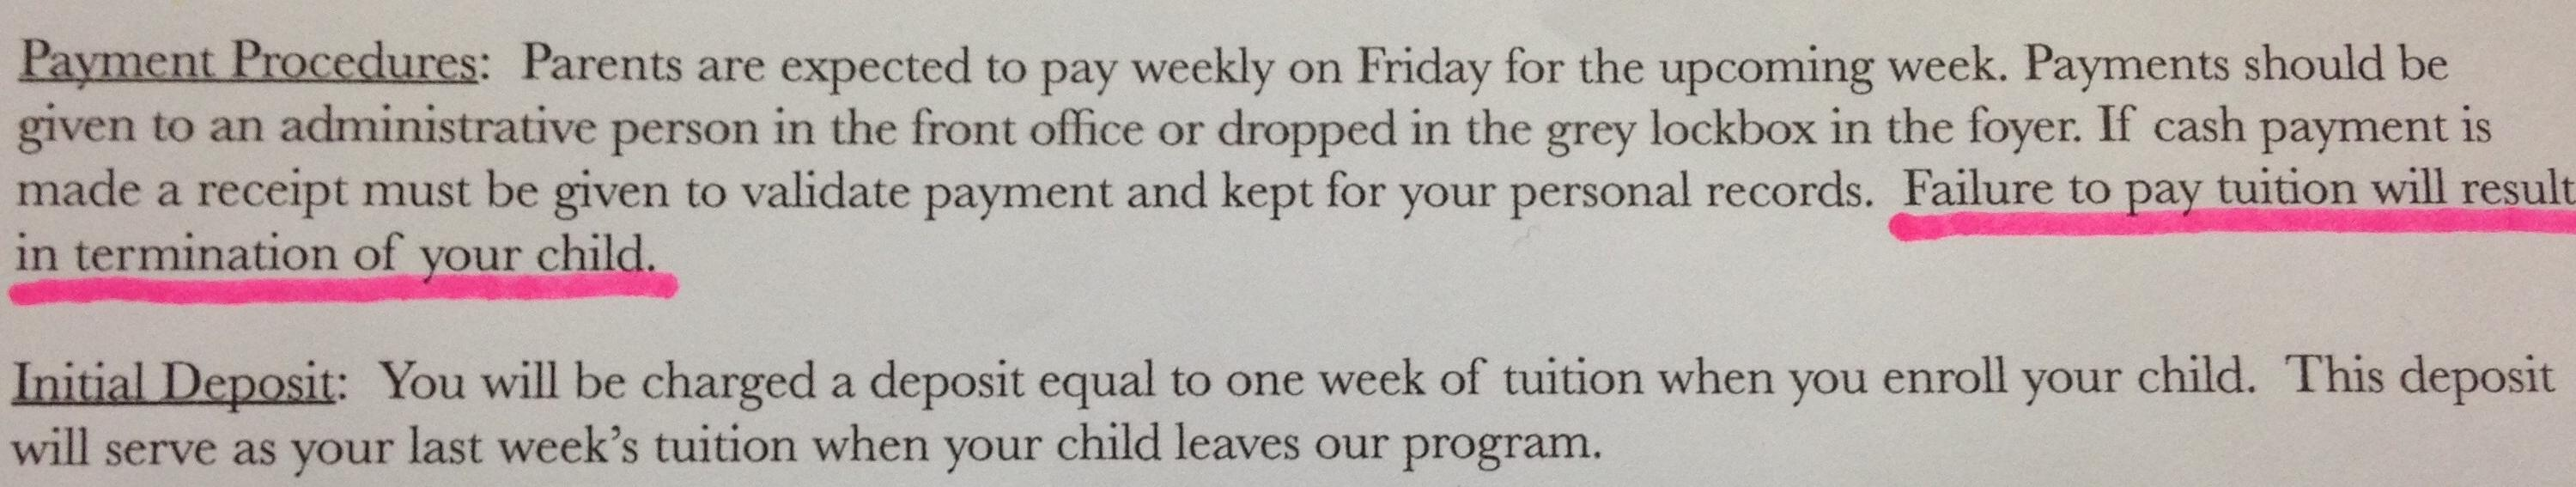 My son's new daycare isn't fucking around with payment - Imgur